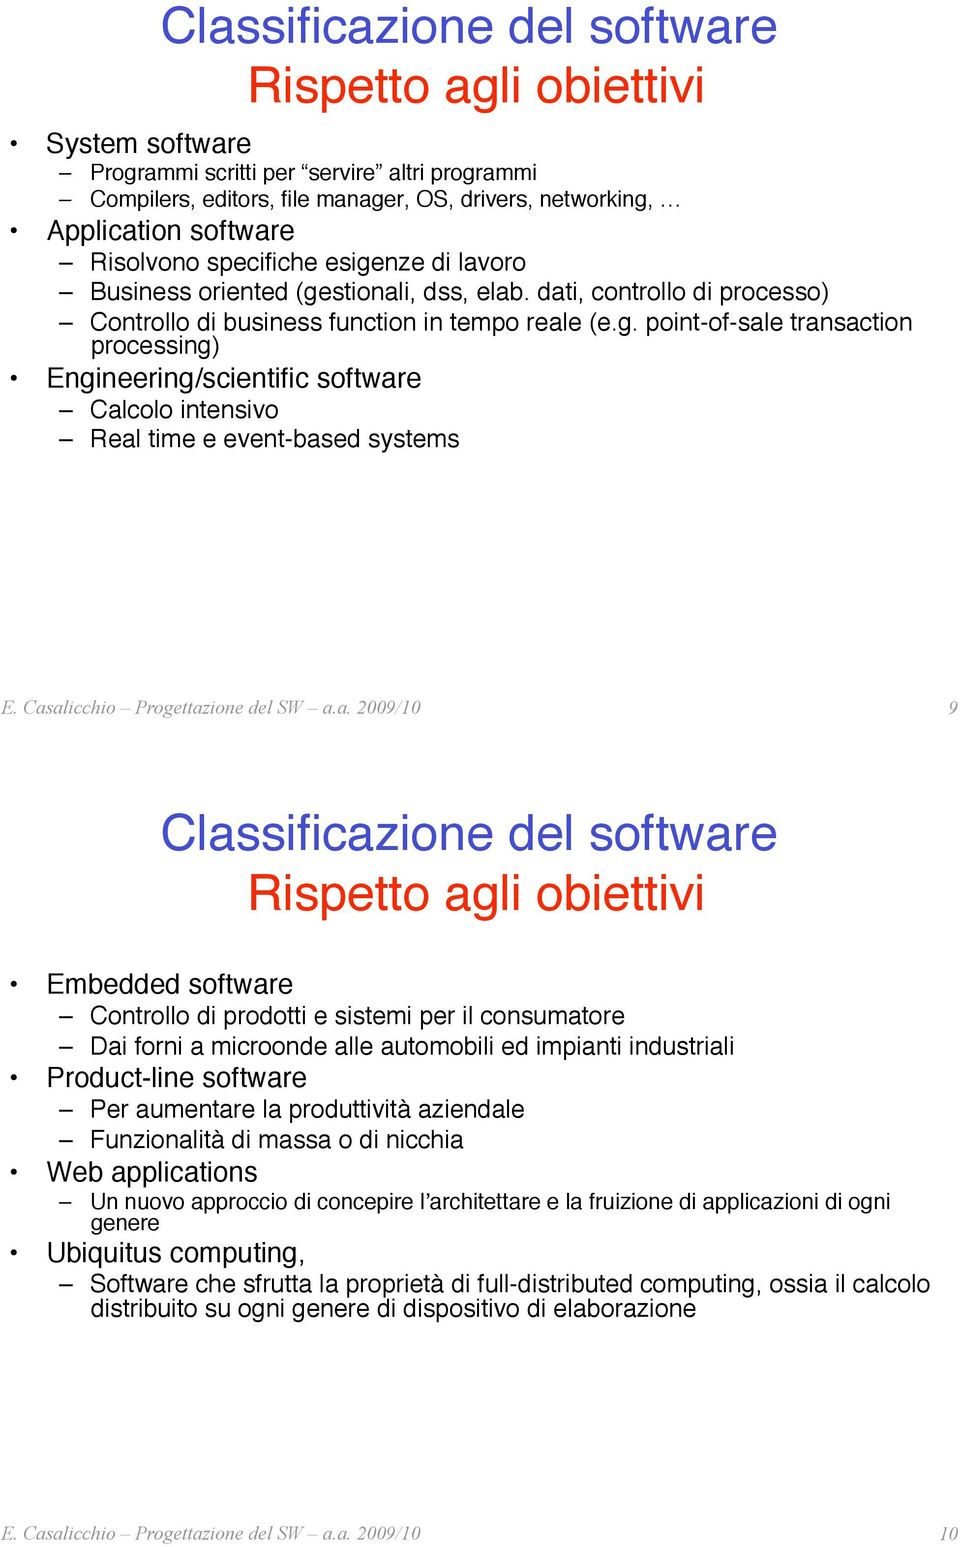 "esigenze di lavoro"" # Business oriented (gestionali, dss, elab. dati, controllo di processo)"" # Controllo di business function in tempo reale (e.g. point-of-sale transaction processing)"""